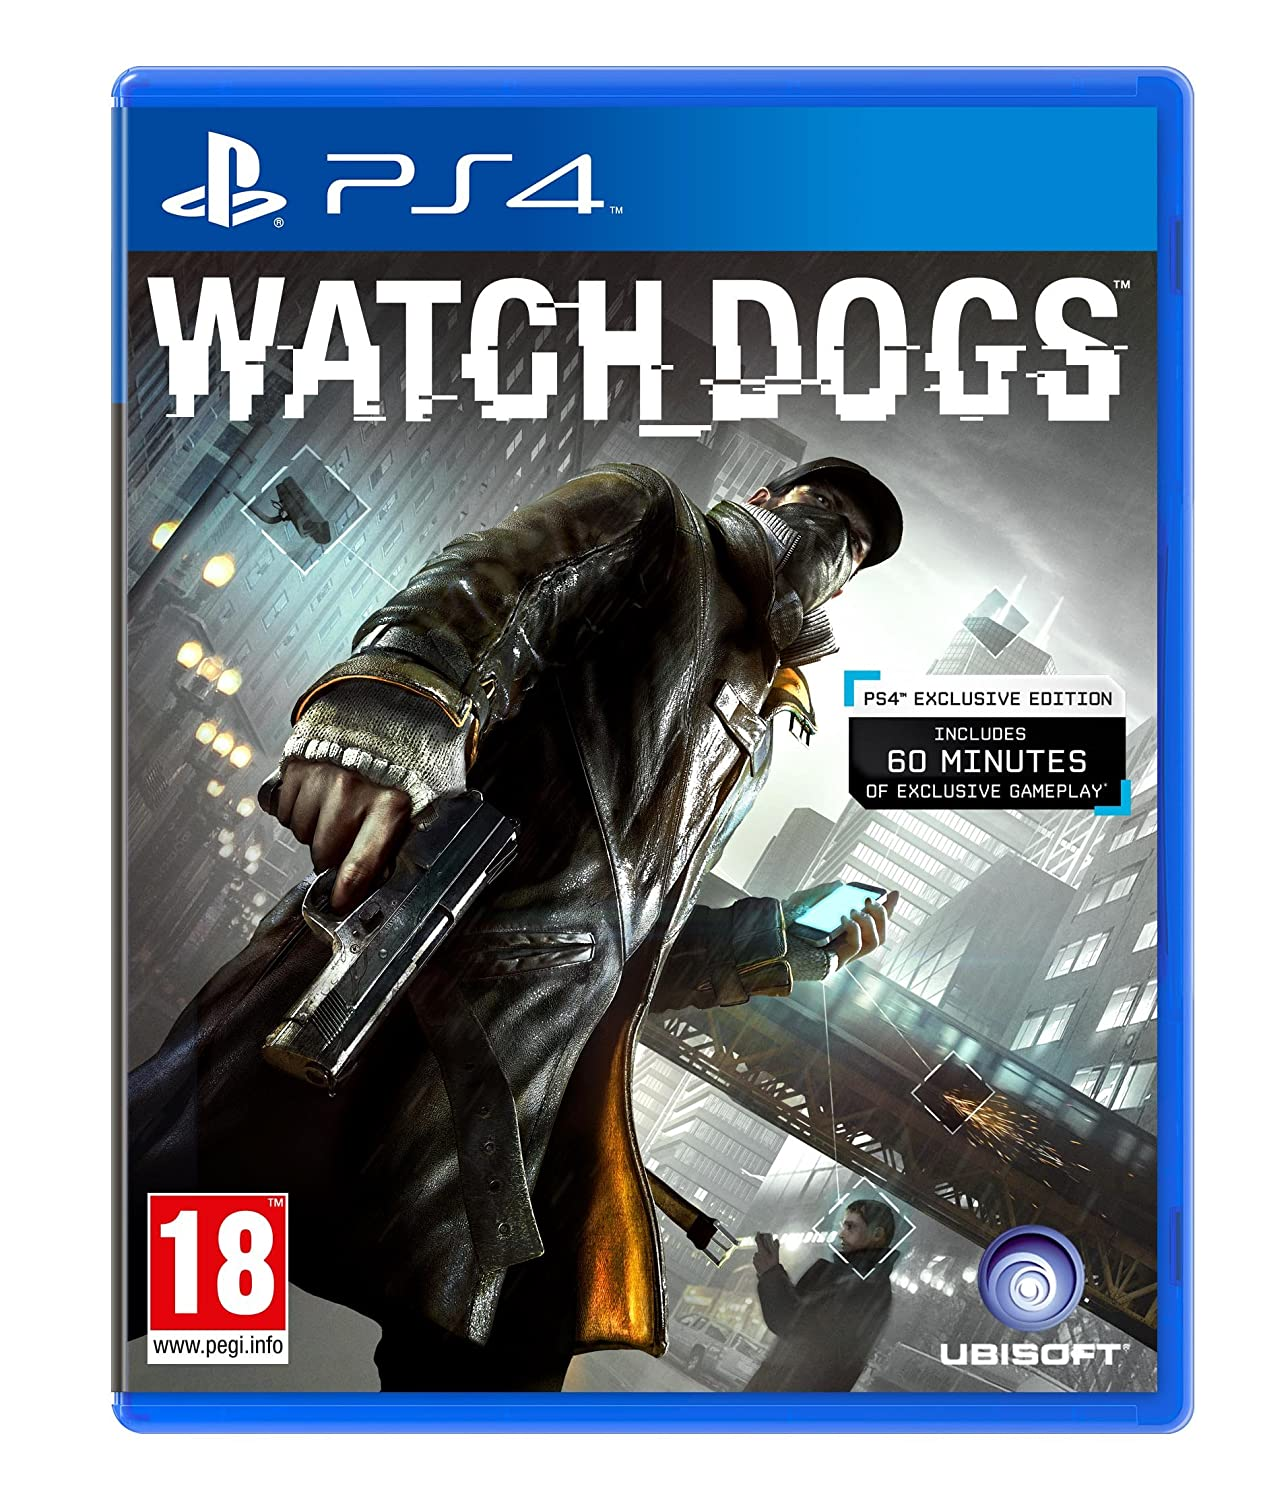 Buy watch dogs (ps4) from amazon. Co. Uk. Everyday low prices on a huge range of consoles, games and accessories.